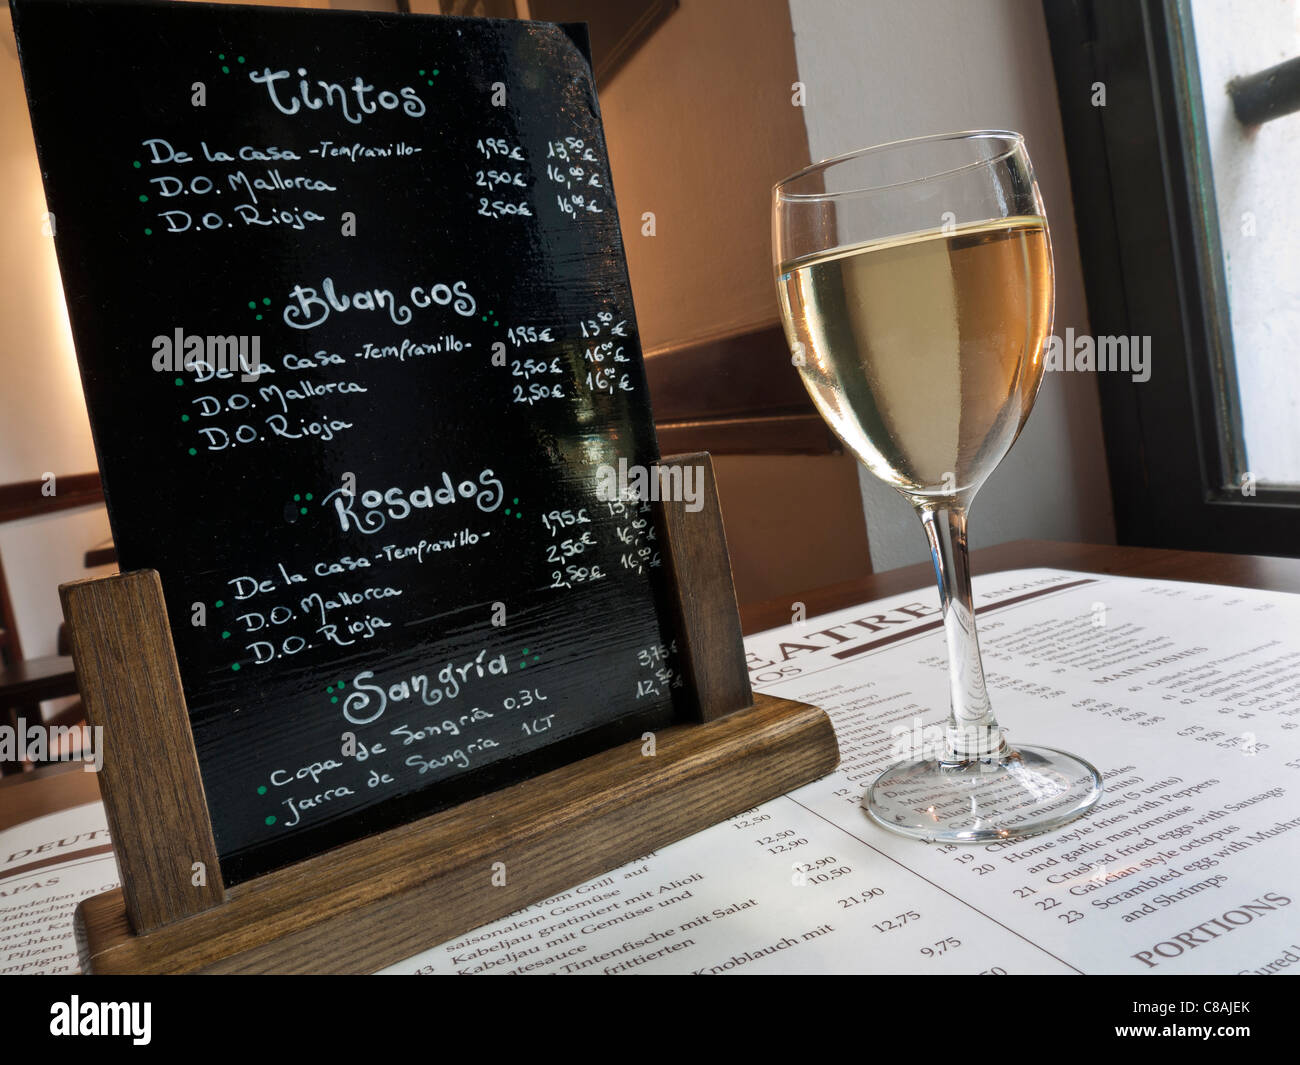 Blackboard wine list table glass of white mallorcan wine for Table 52 wine list